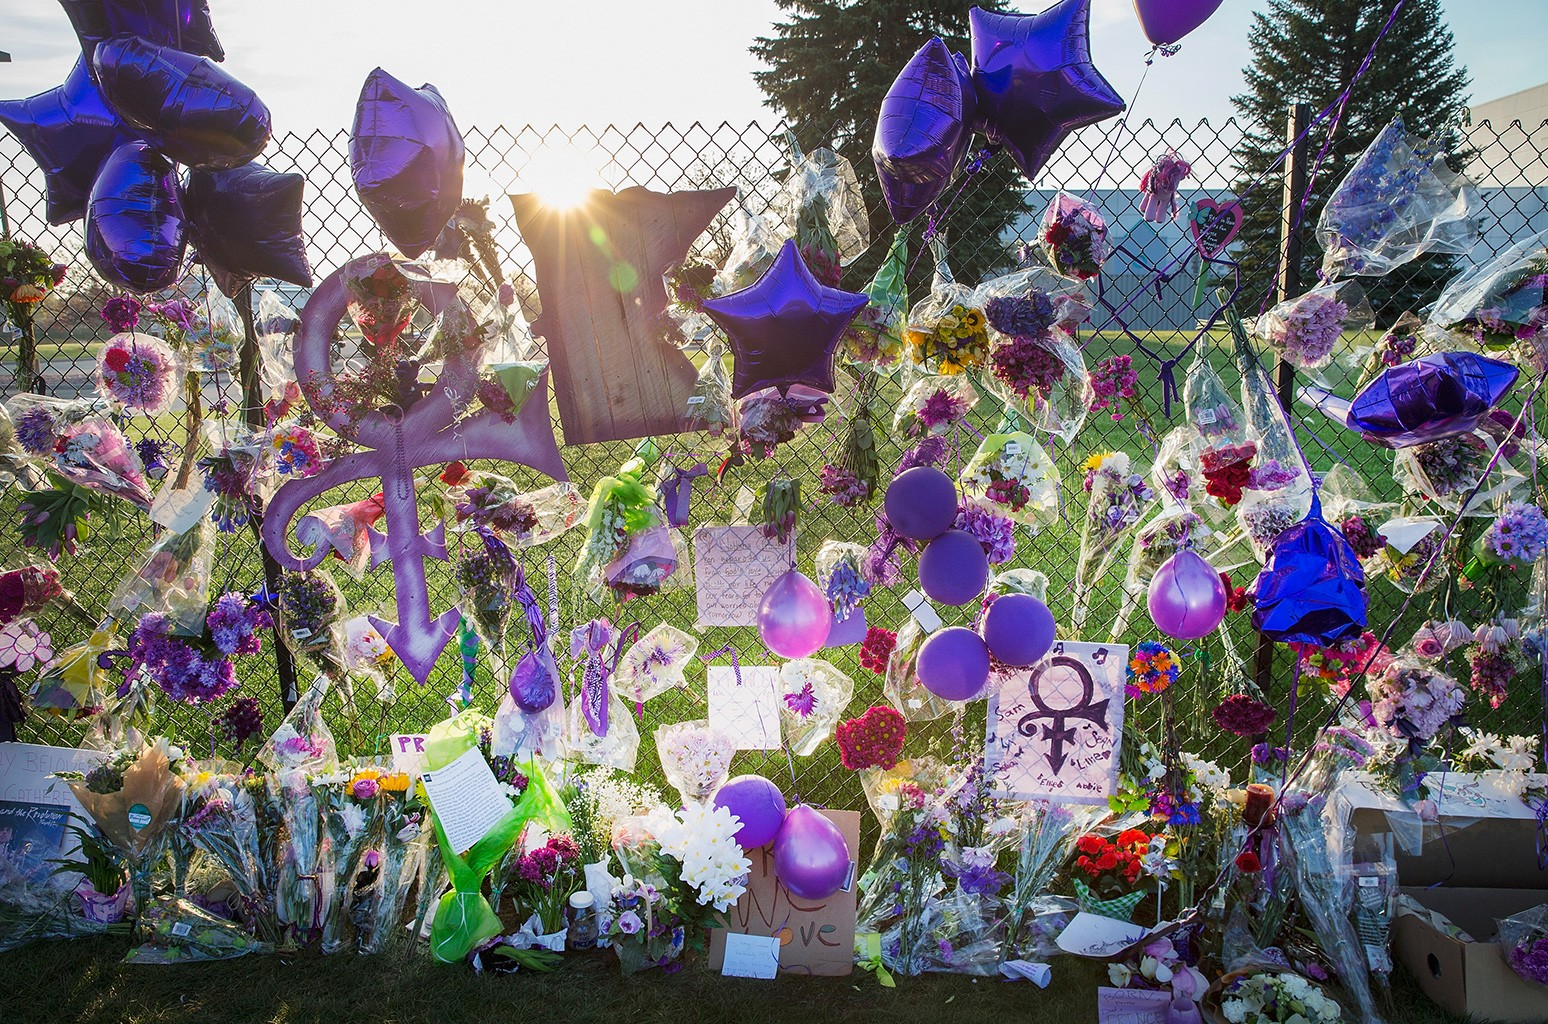 Mementos left by fans are attached to the fence which surrounds Paisley Park, the home and studio of Prince, on April 23, 2016 in Chanhassen, Minnesota.